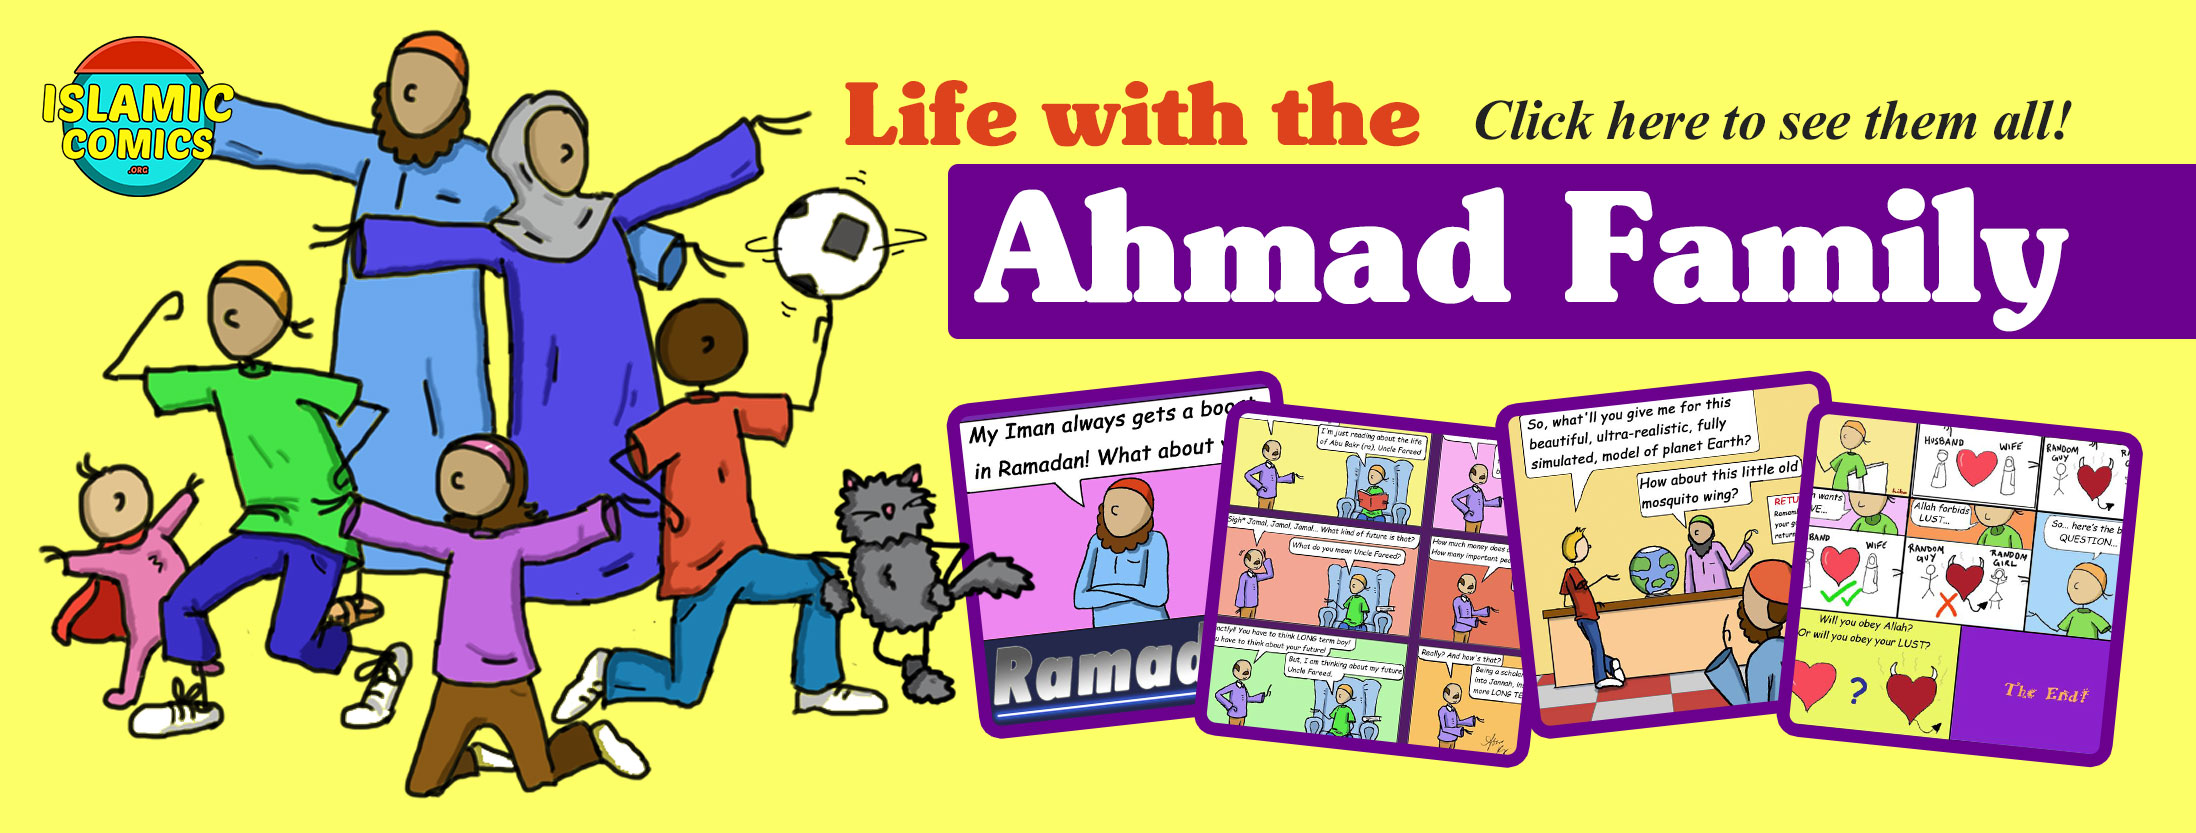 Banner Ahmad Family Islamic Comics